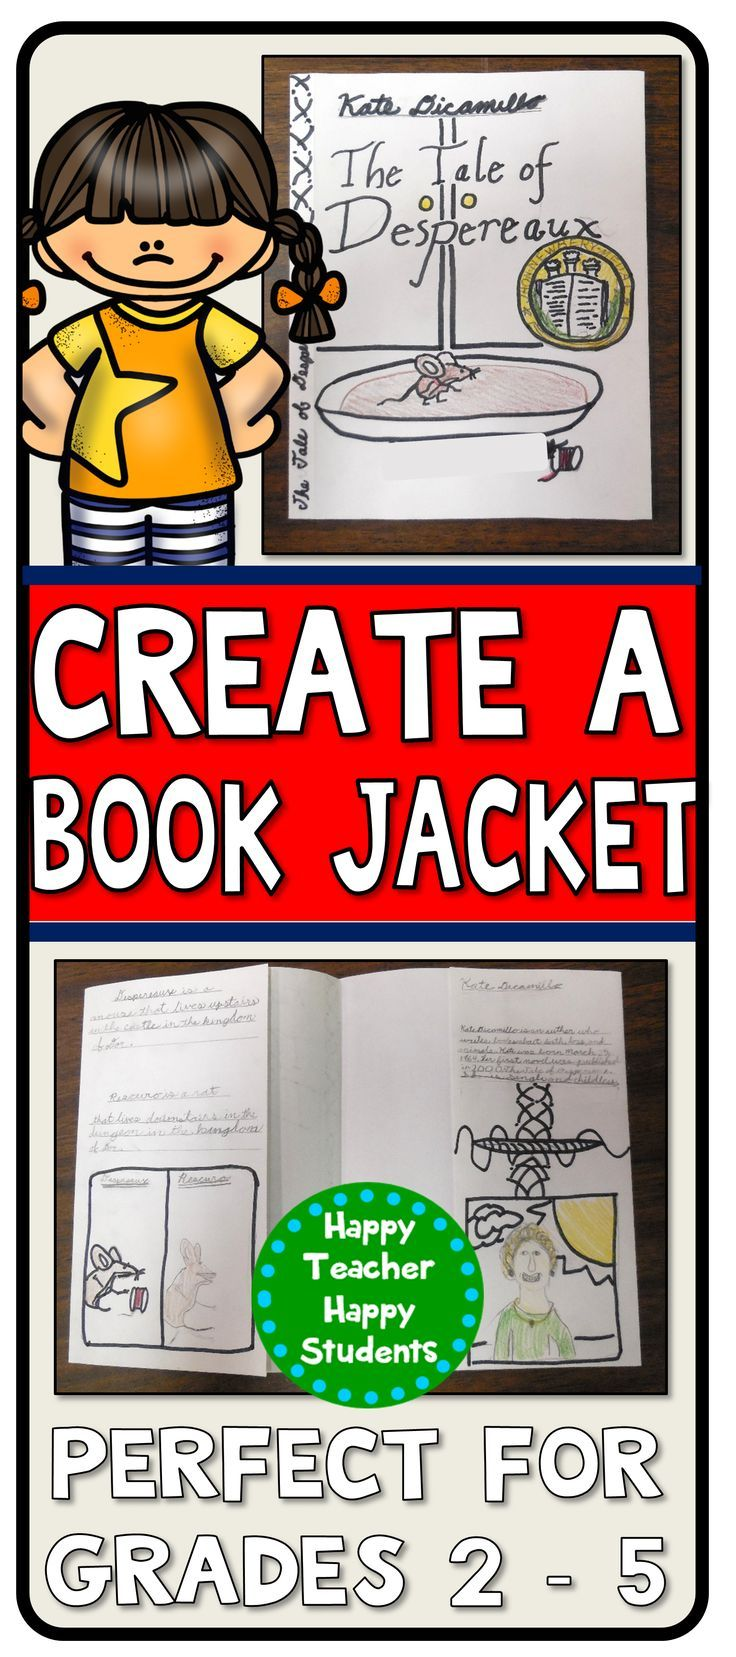 How To Make A Book Jacket Book Report ~ Book jacket book jacket book report writing art reading